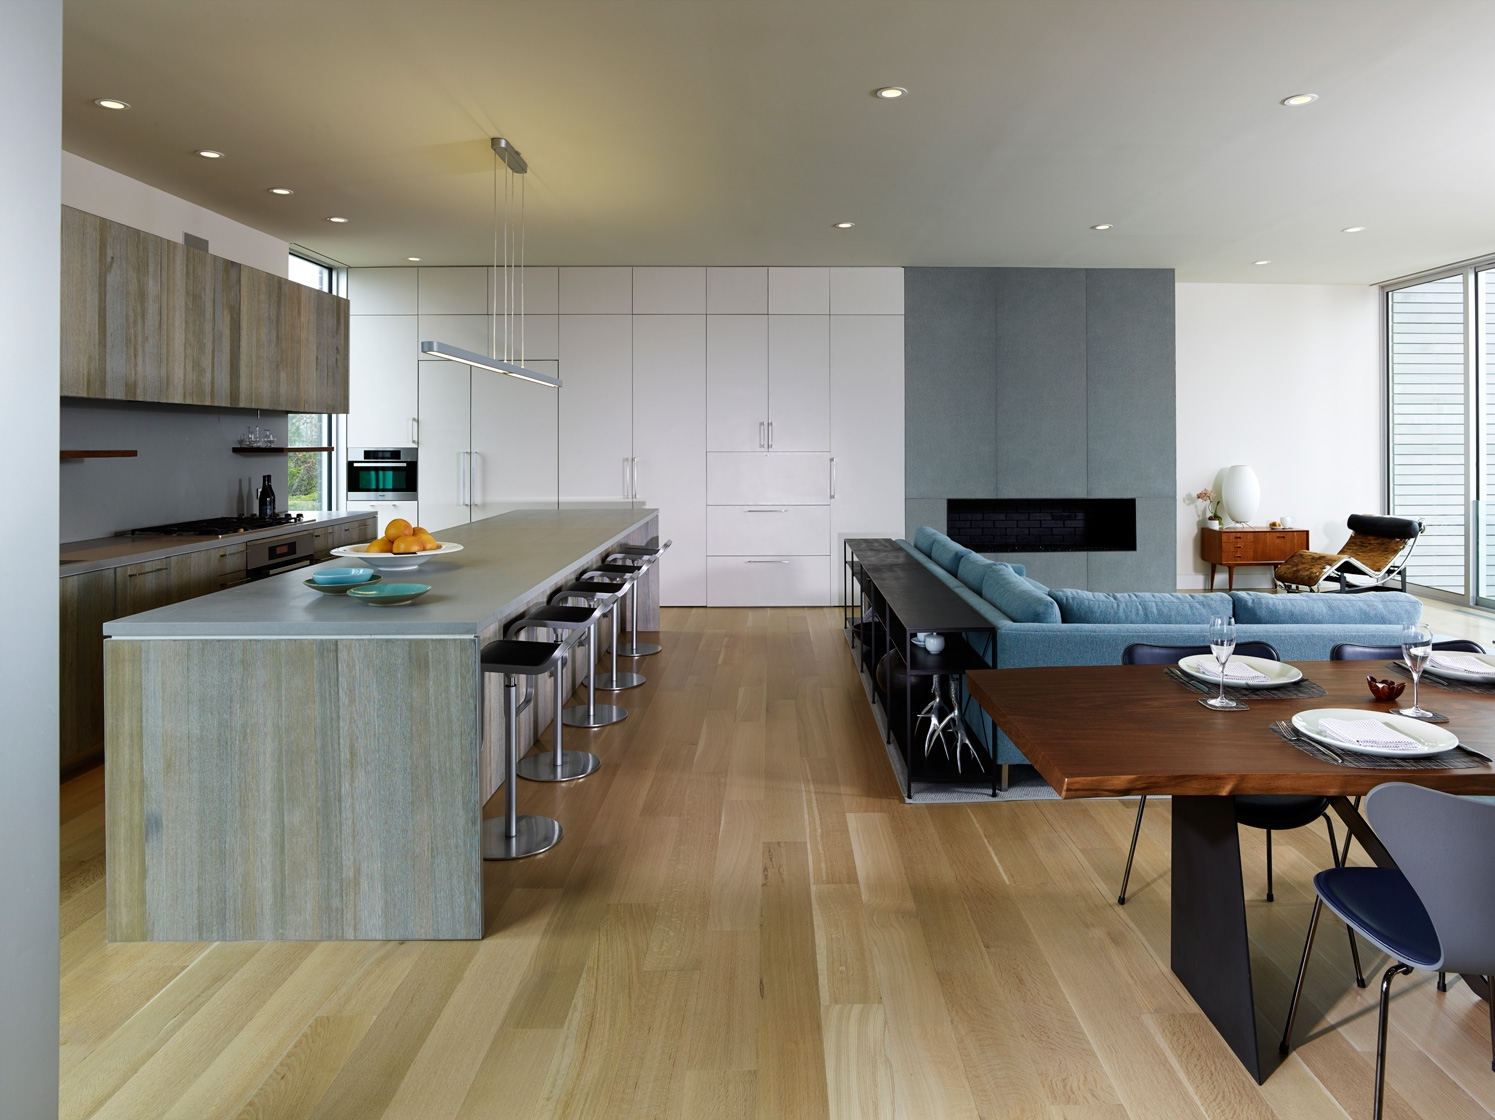 Water Mill, NY modern house interior design kitchen